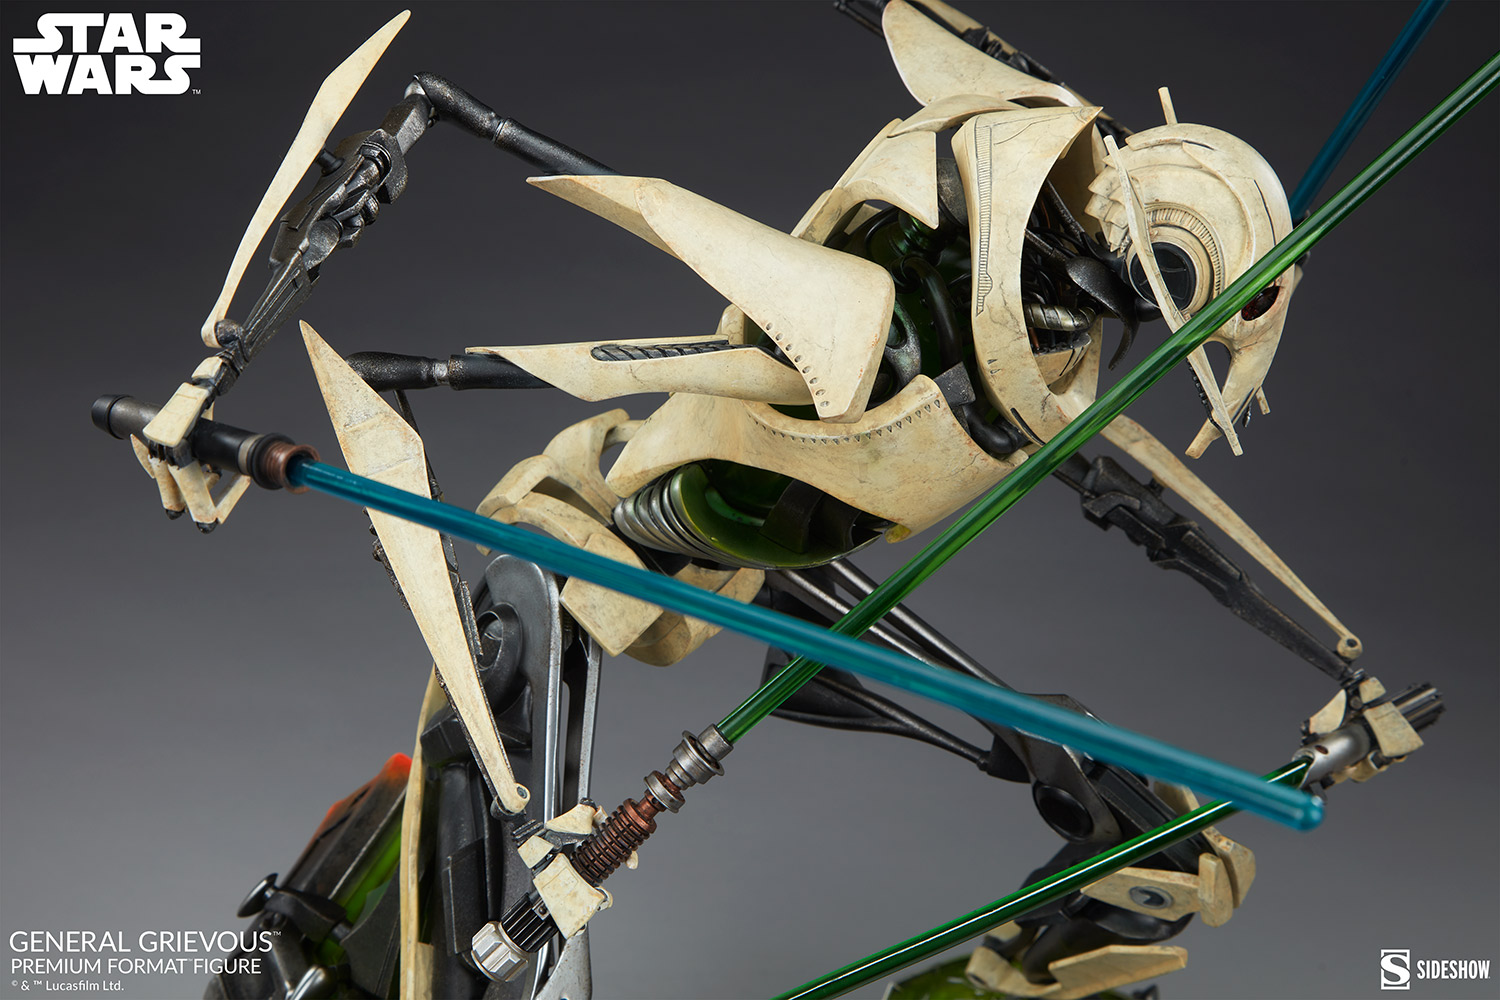 Star Wars: Revenge of the Sith : General Grievous Premium Format Figure General-grievous_star-wars_gallery_6155e684f19ae